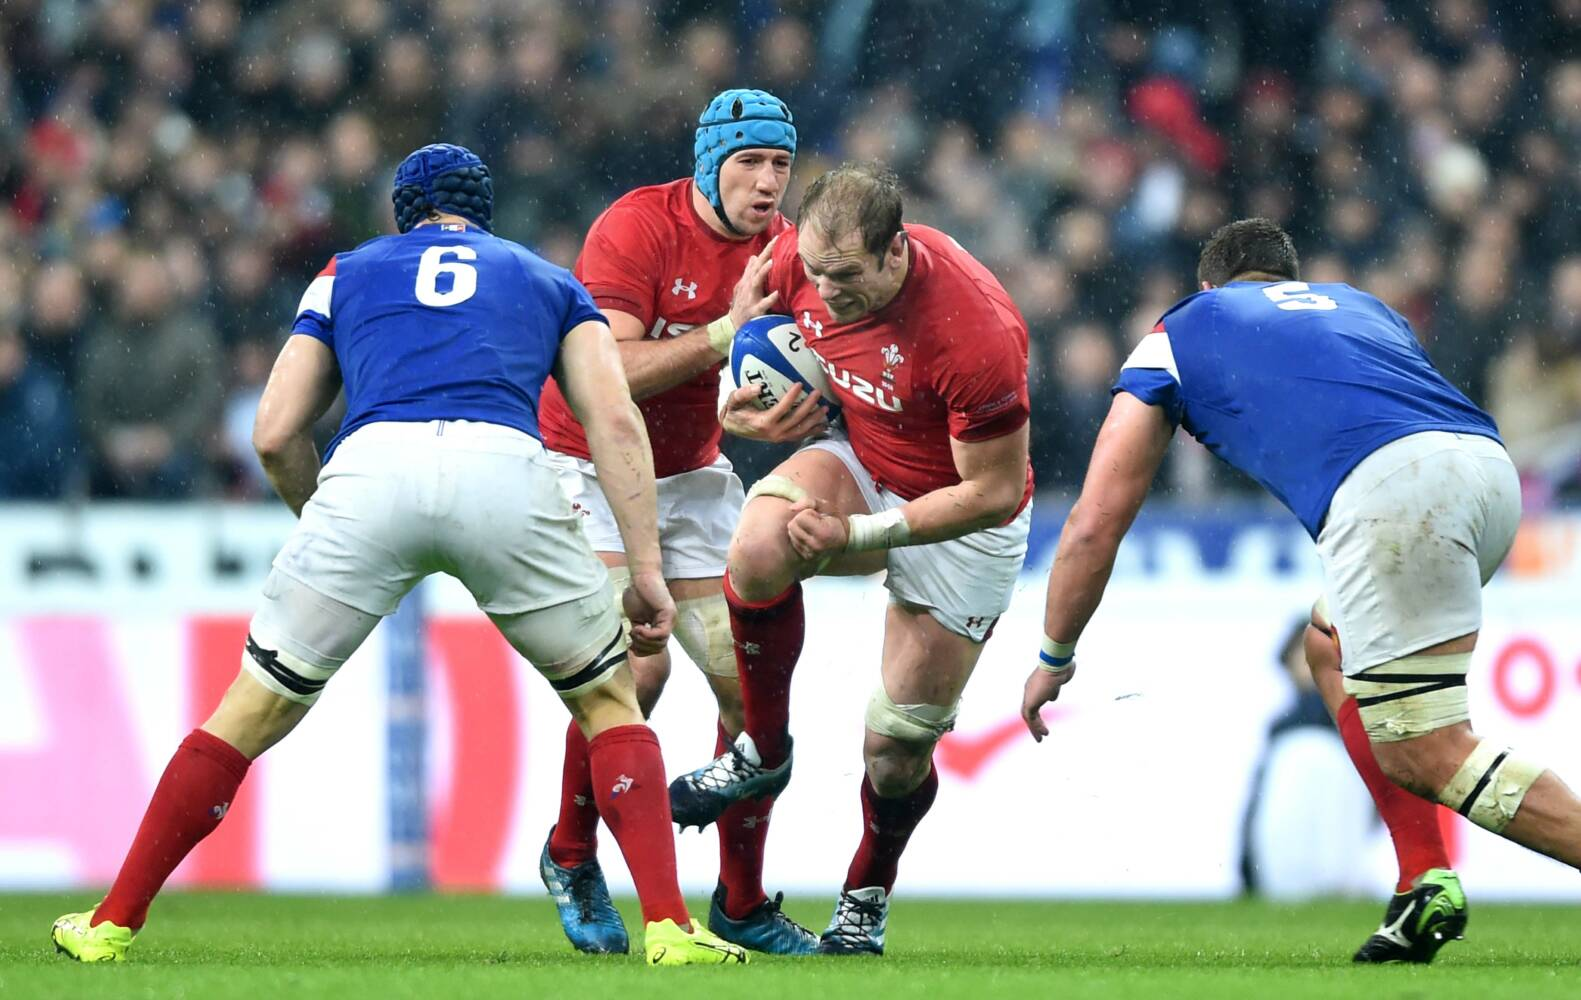 Wales fine-tuning for France